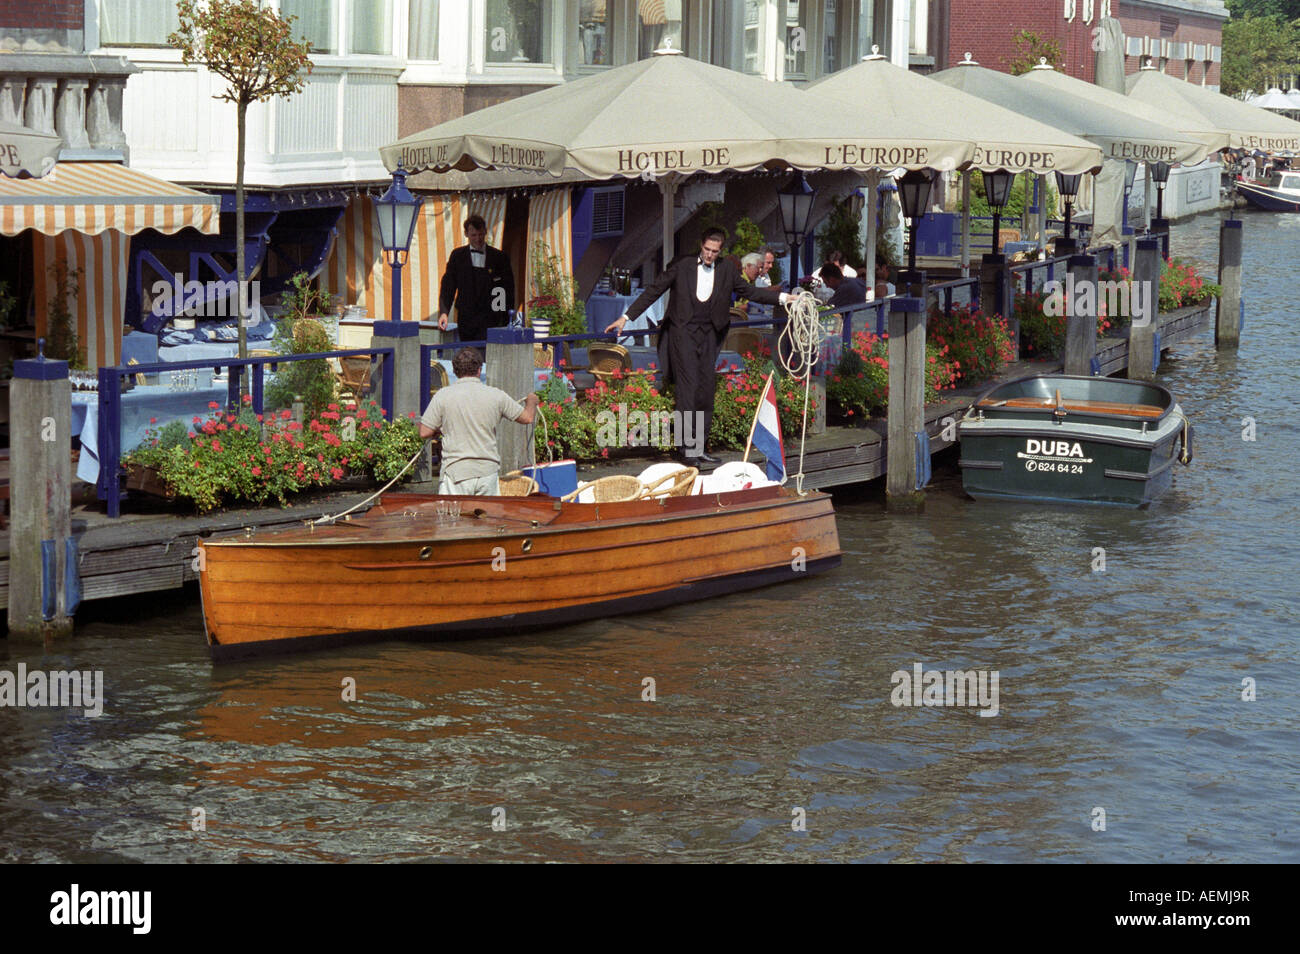 Wooden Boat An Amsterdam Canal In Front A Hotel And